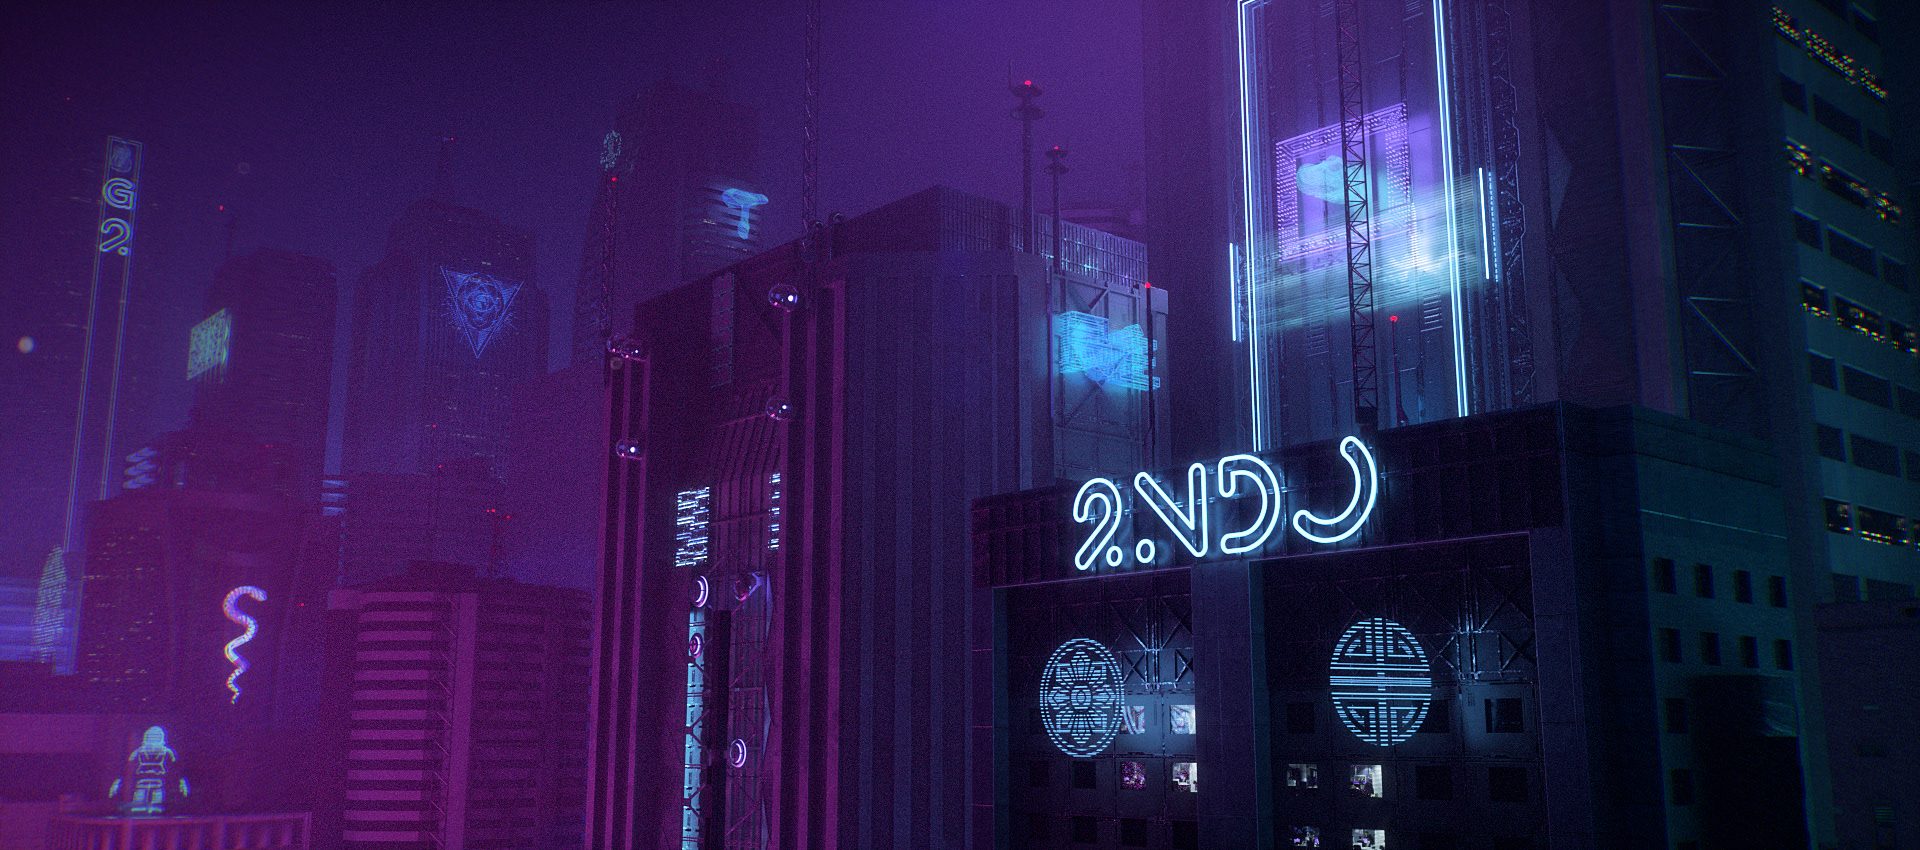 Muse: an Experimental Short Film inspired by Cyberpunk